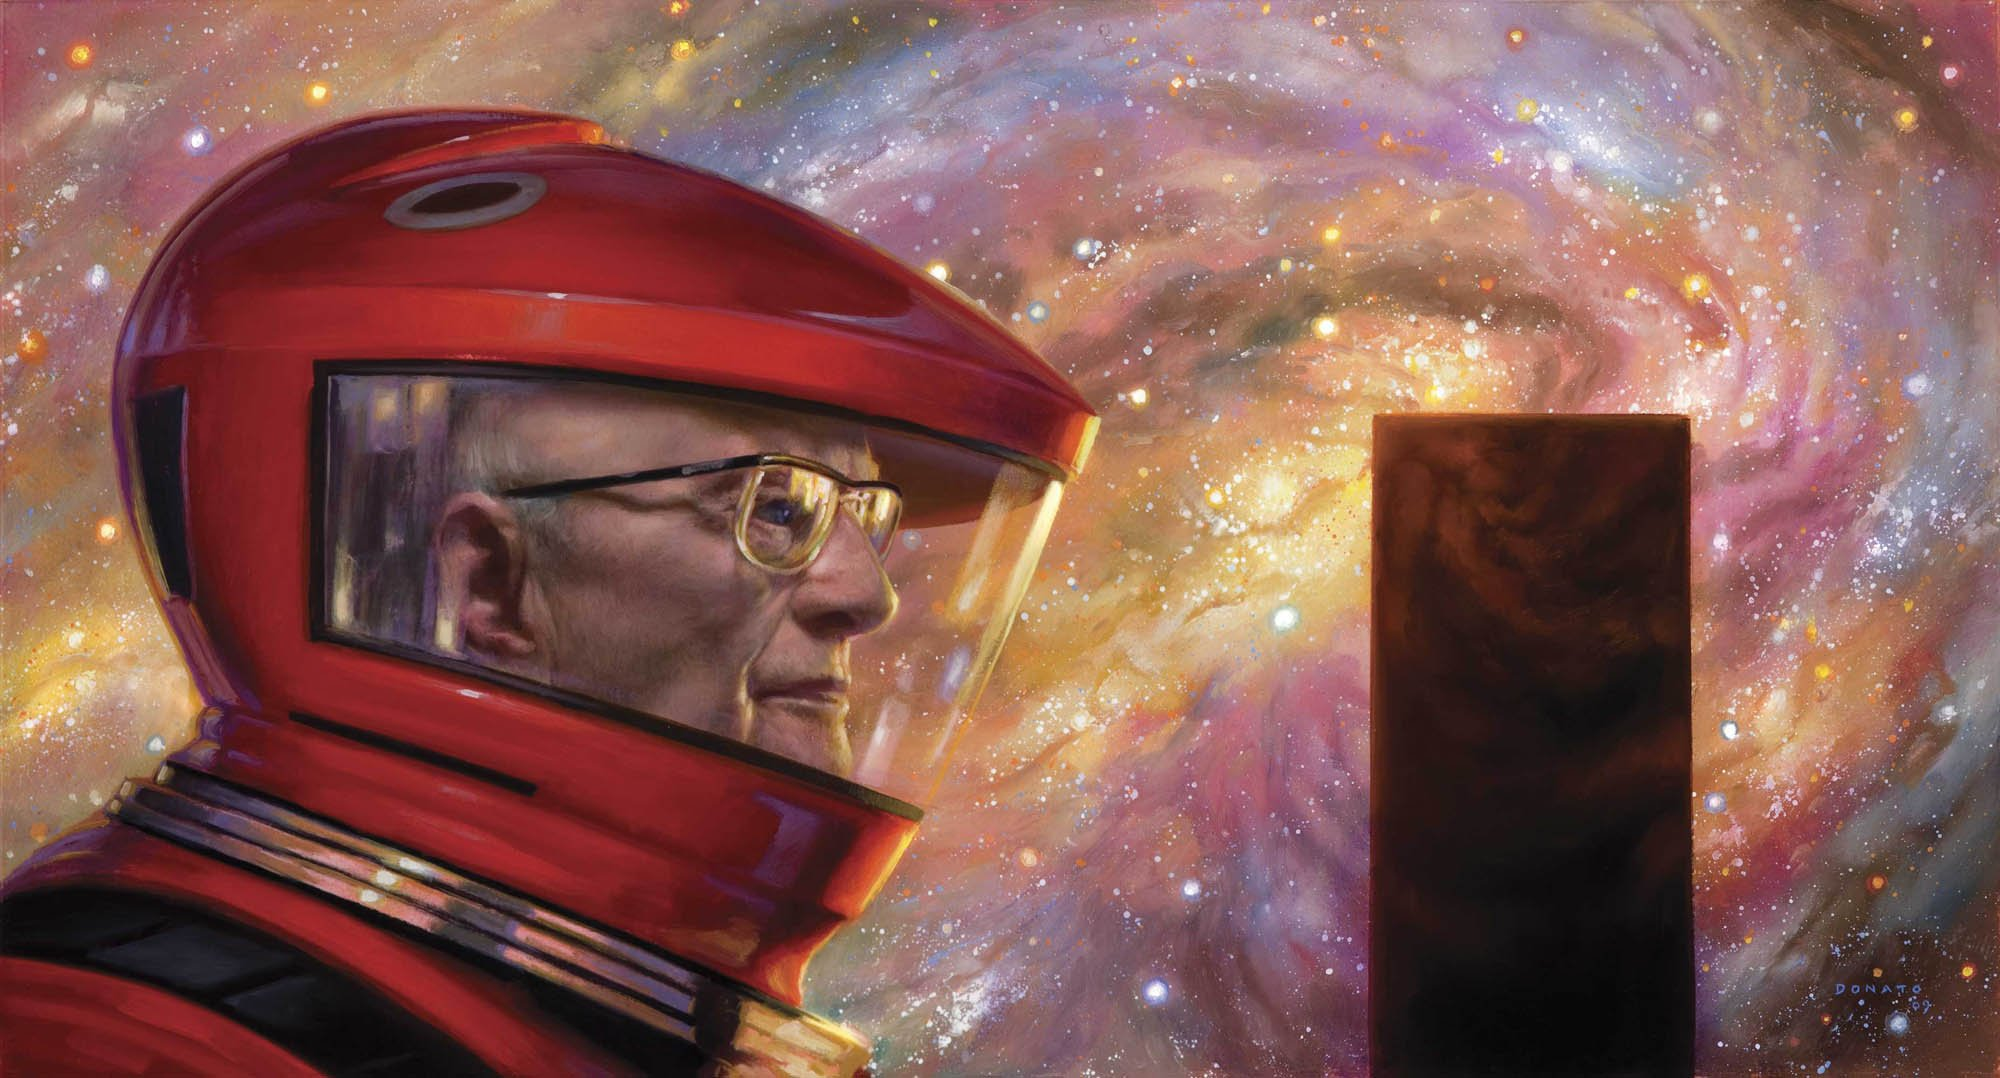 "2001 A Space Odyssey Revisited - Arthur C. Clarke 16"" x 24"" Oil on Panel 2015  collection of Avrim Fishkind and Wendy Hawkins"